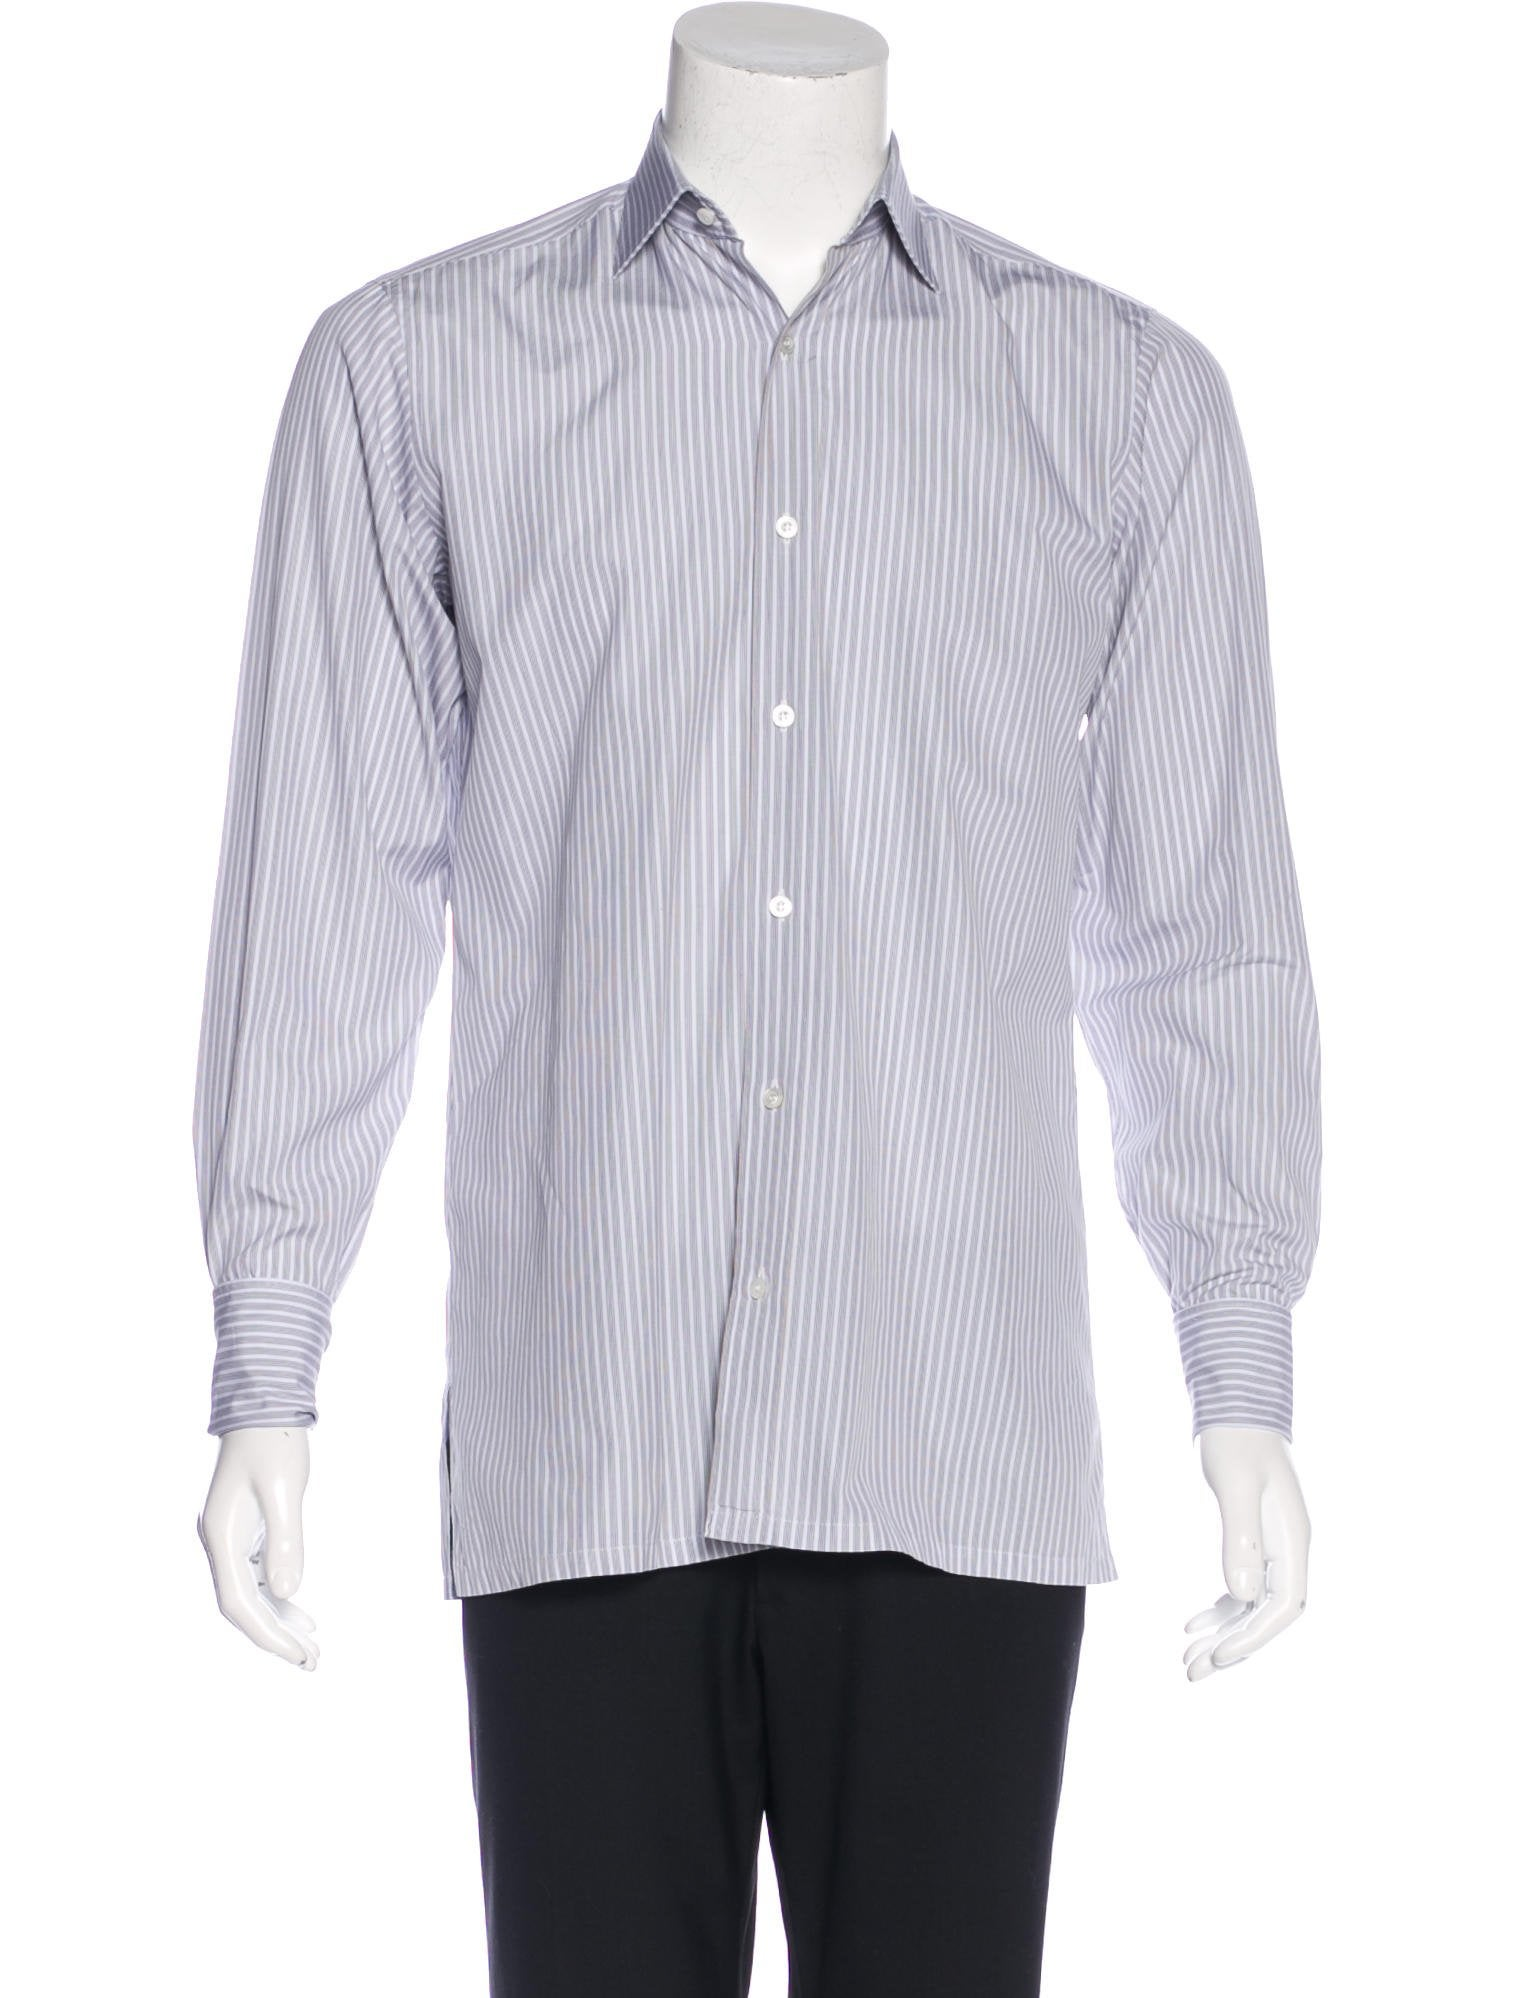 Charvet striped french cuff shirt clothing wchrv20591 for What is a french cuff shirt